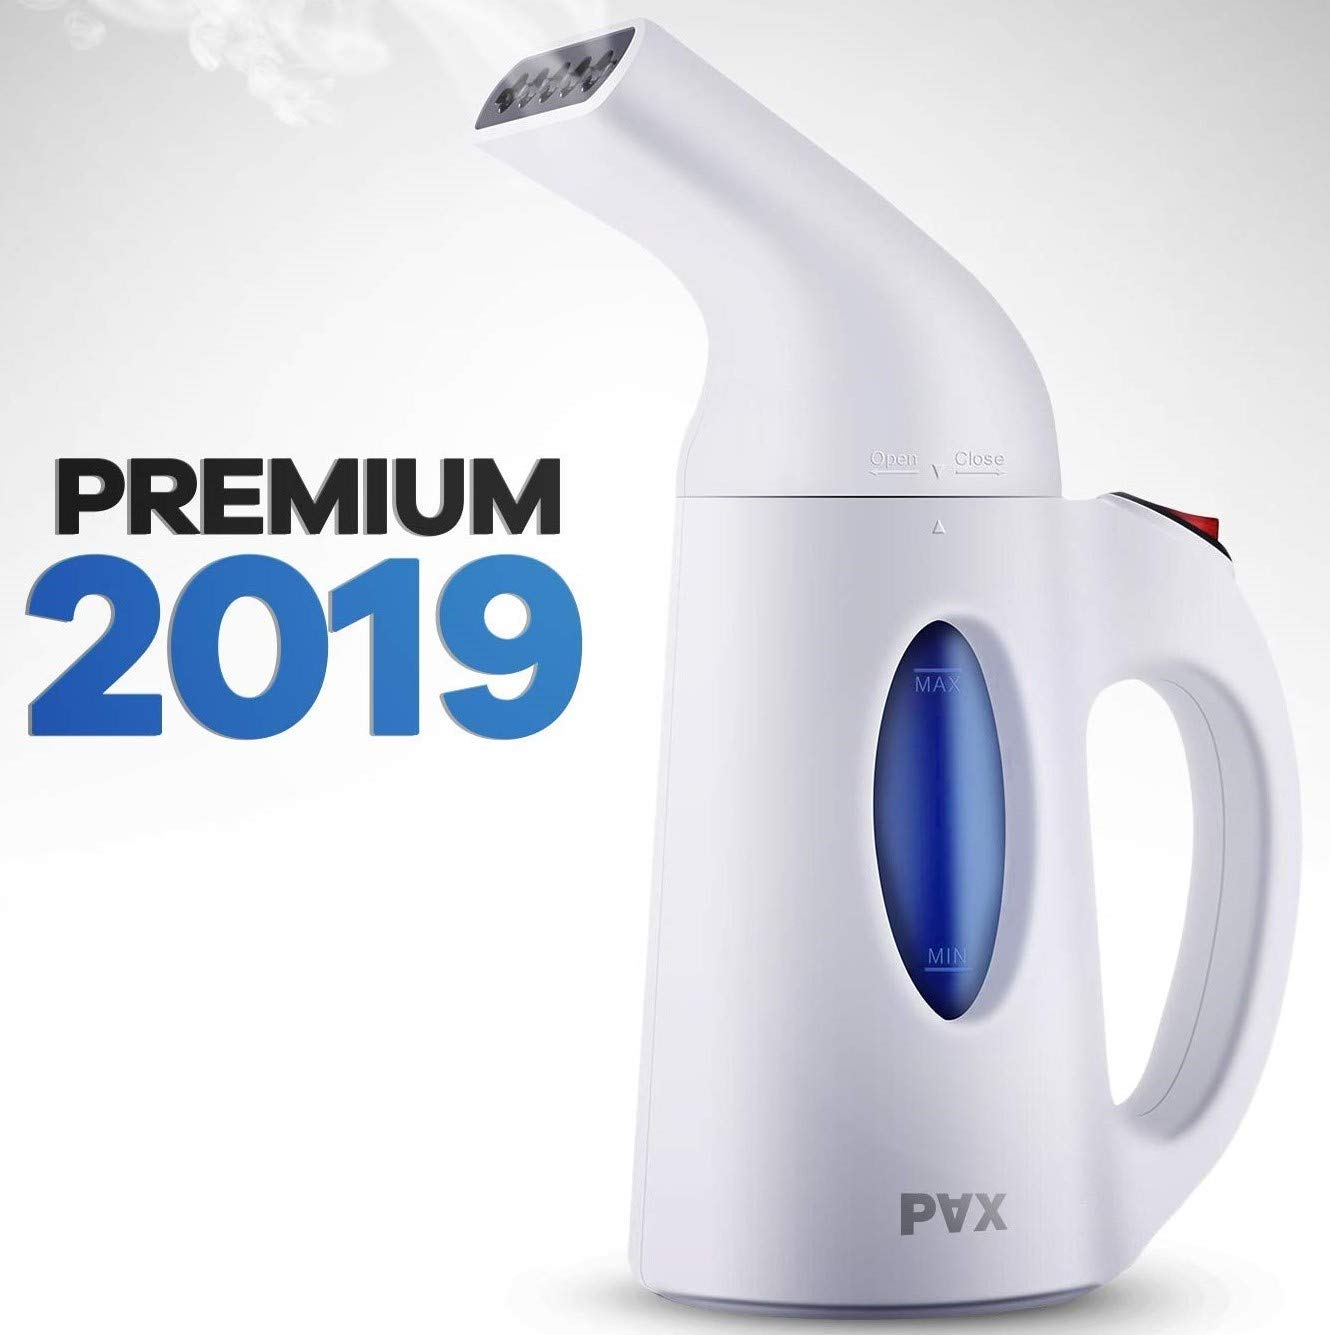 Pax Steamer For Clothes, Travel and Home Handheld Garment Steamer, 60 Seconds Heat-Up, Fabric Steamer With Automatic Shut-off Safety Protection, 140milliliter , White by PAX